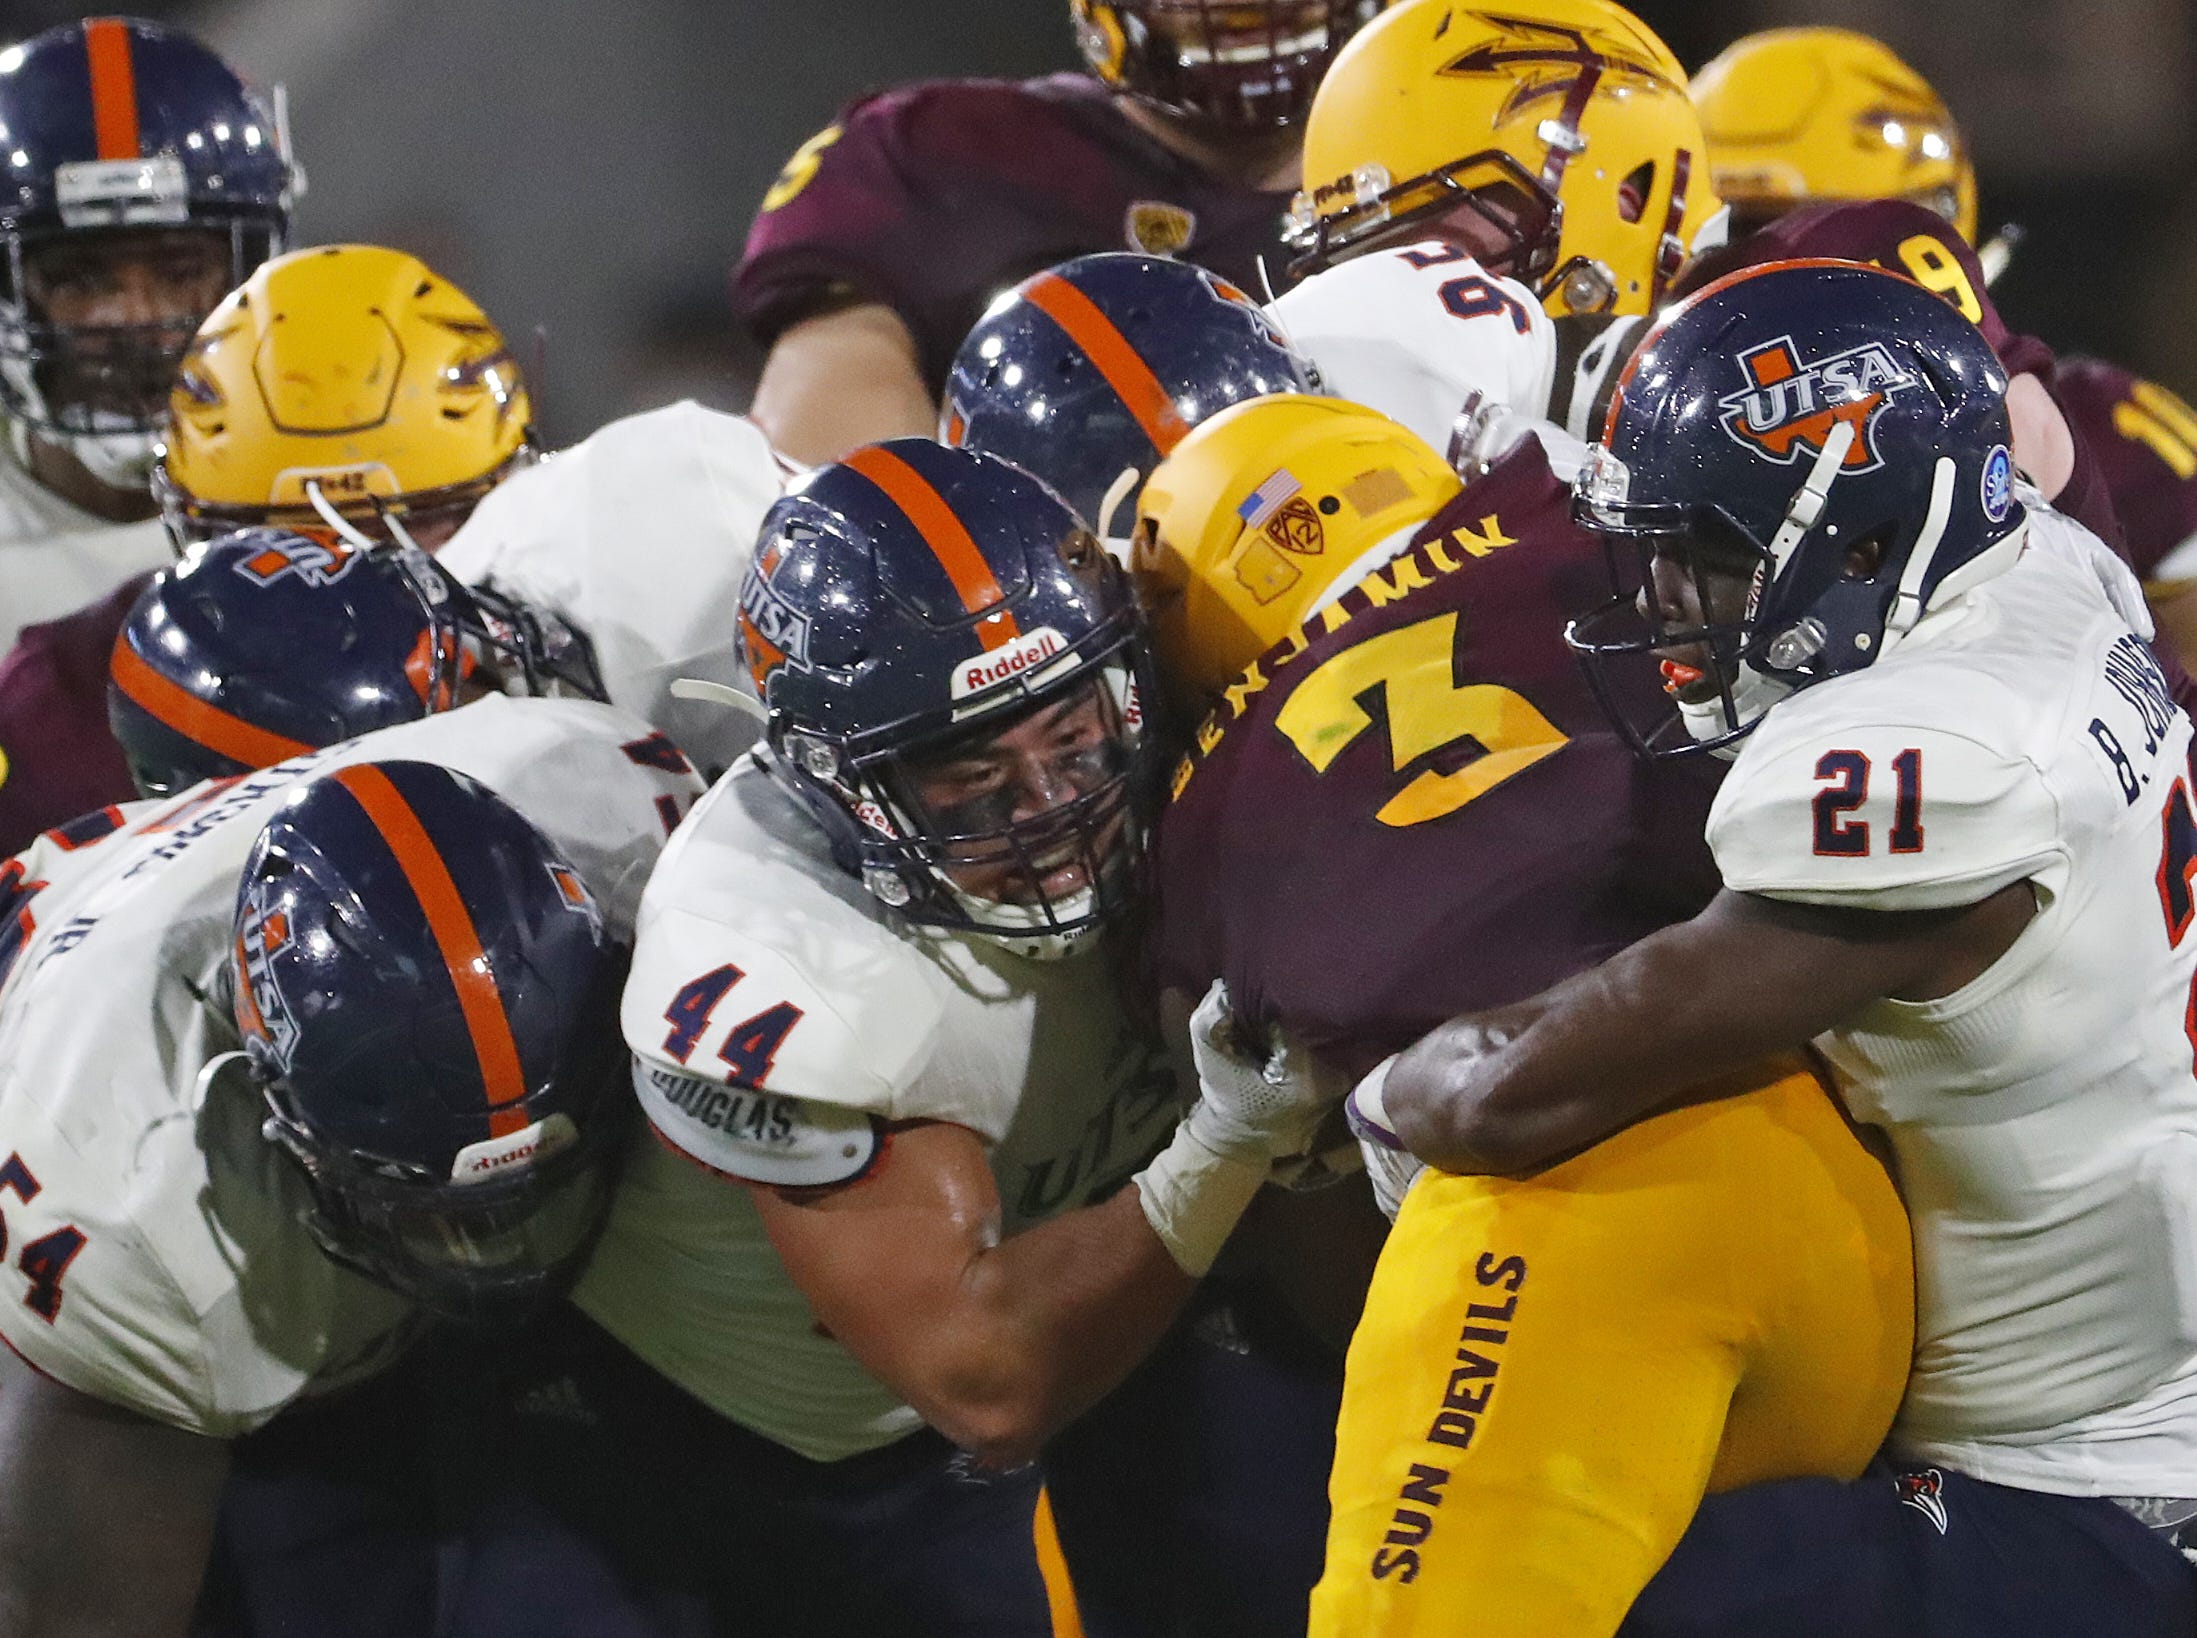 UTSA Roadrunners linebacker Les Maruo (44) and safety Brenndan Johnson (21) tackle Arizona State Sun Devils running back Eno Benjamin (3) during the first half at Sun Devil Stadium in Tempe, Ariz. on Sept. 1, 2018.